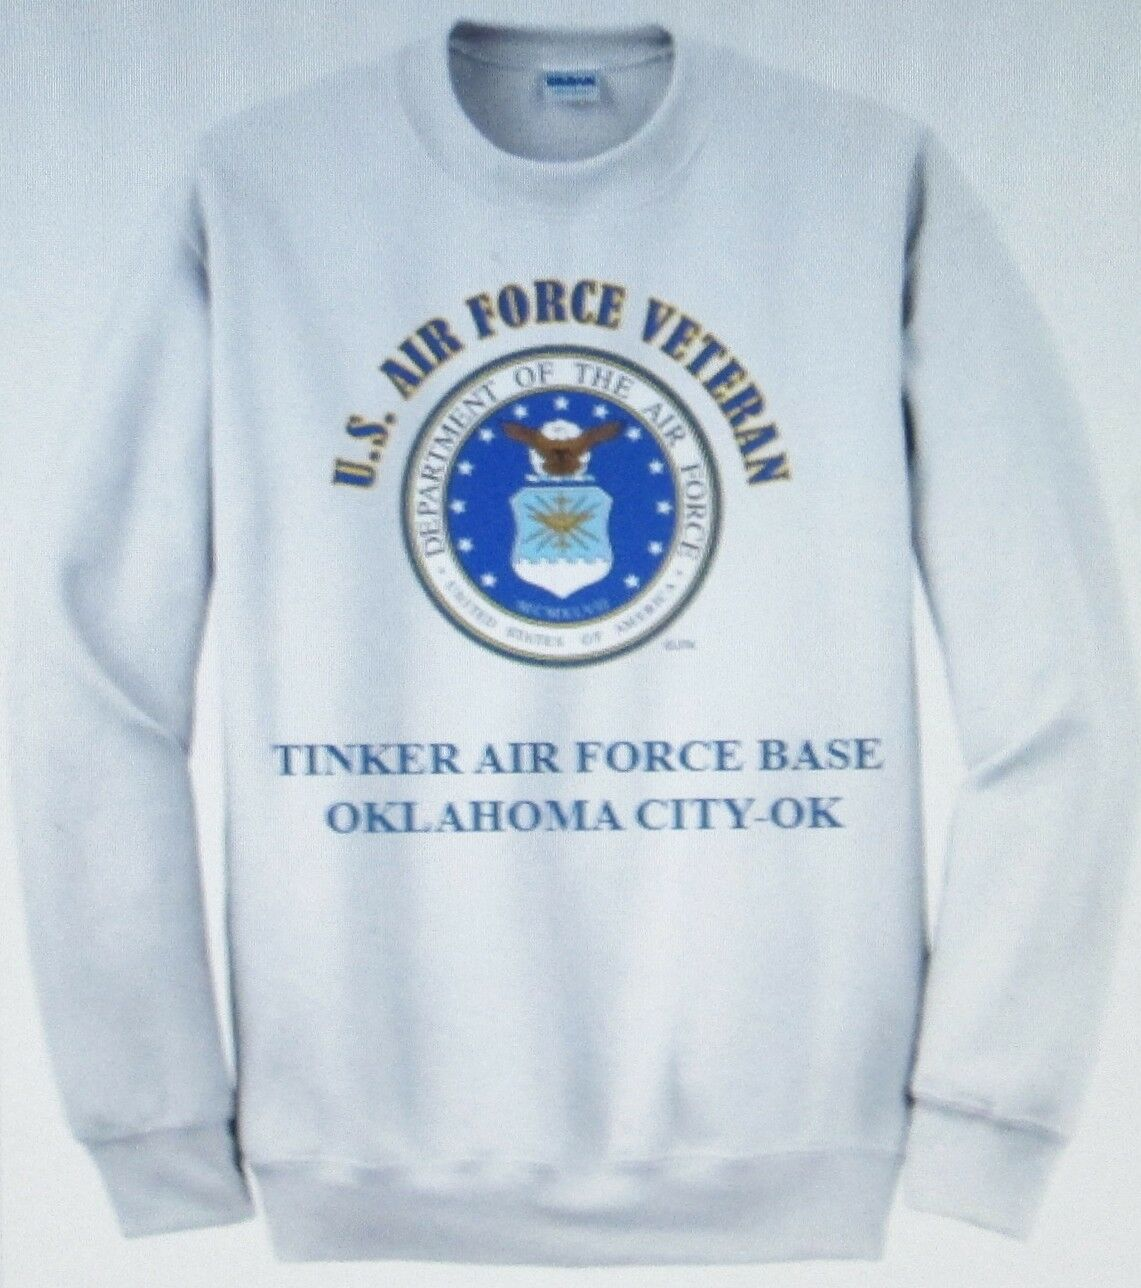 Tinker Air Force Base   Oklahoma City-Ok  Air Force emblema veterano Sudadera  hasta un 70% de descuento